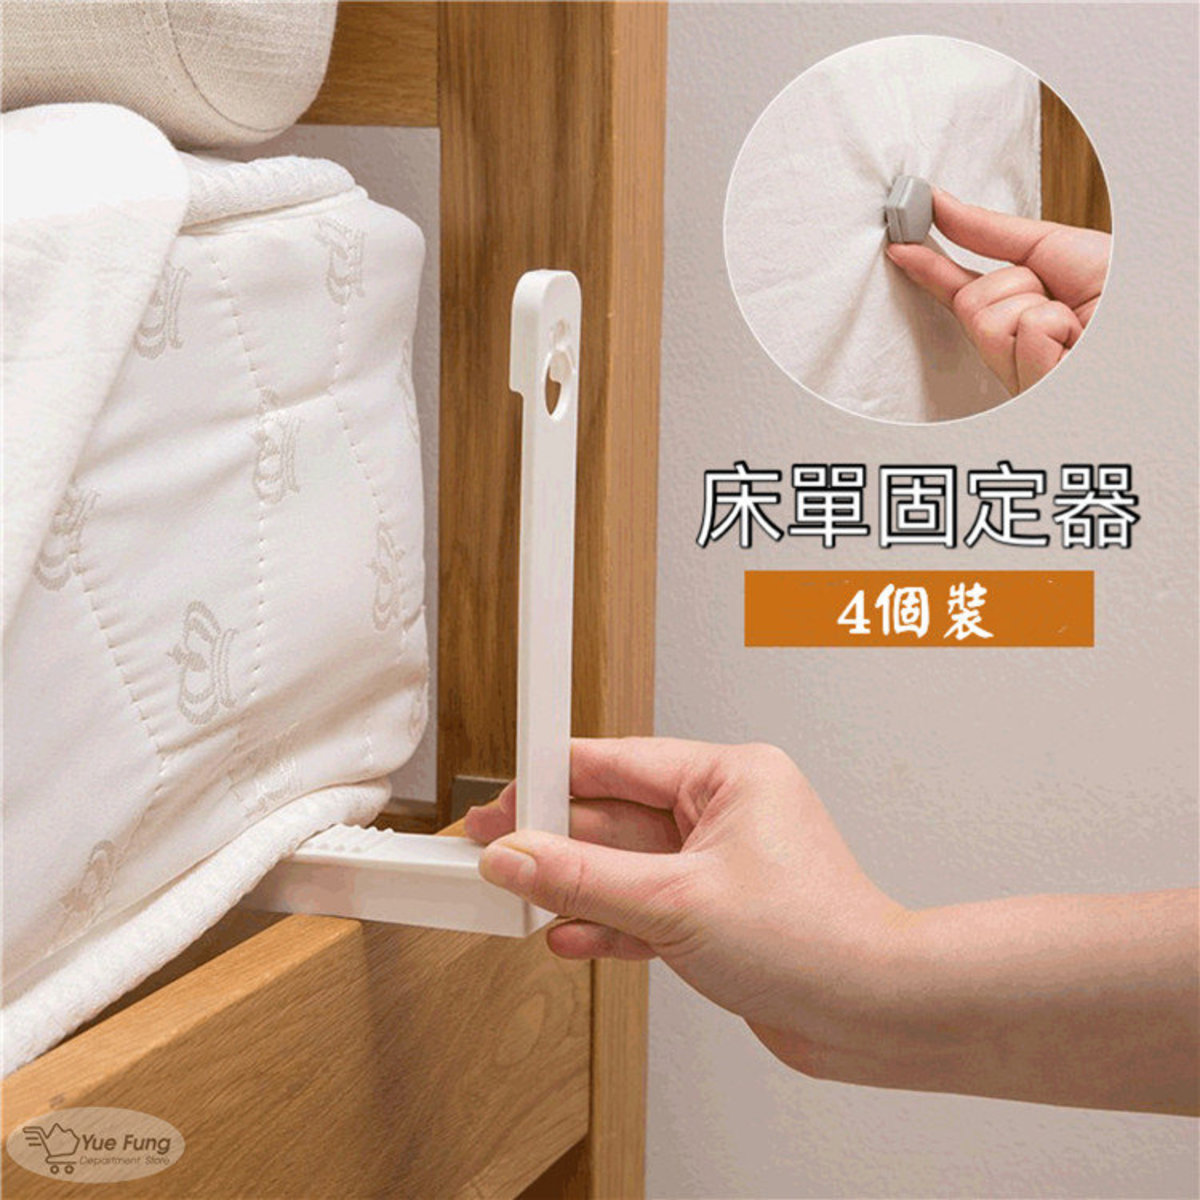 The bed sheet fixing buckle (long section) is elastic and durable, placed under the mattress firmly